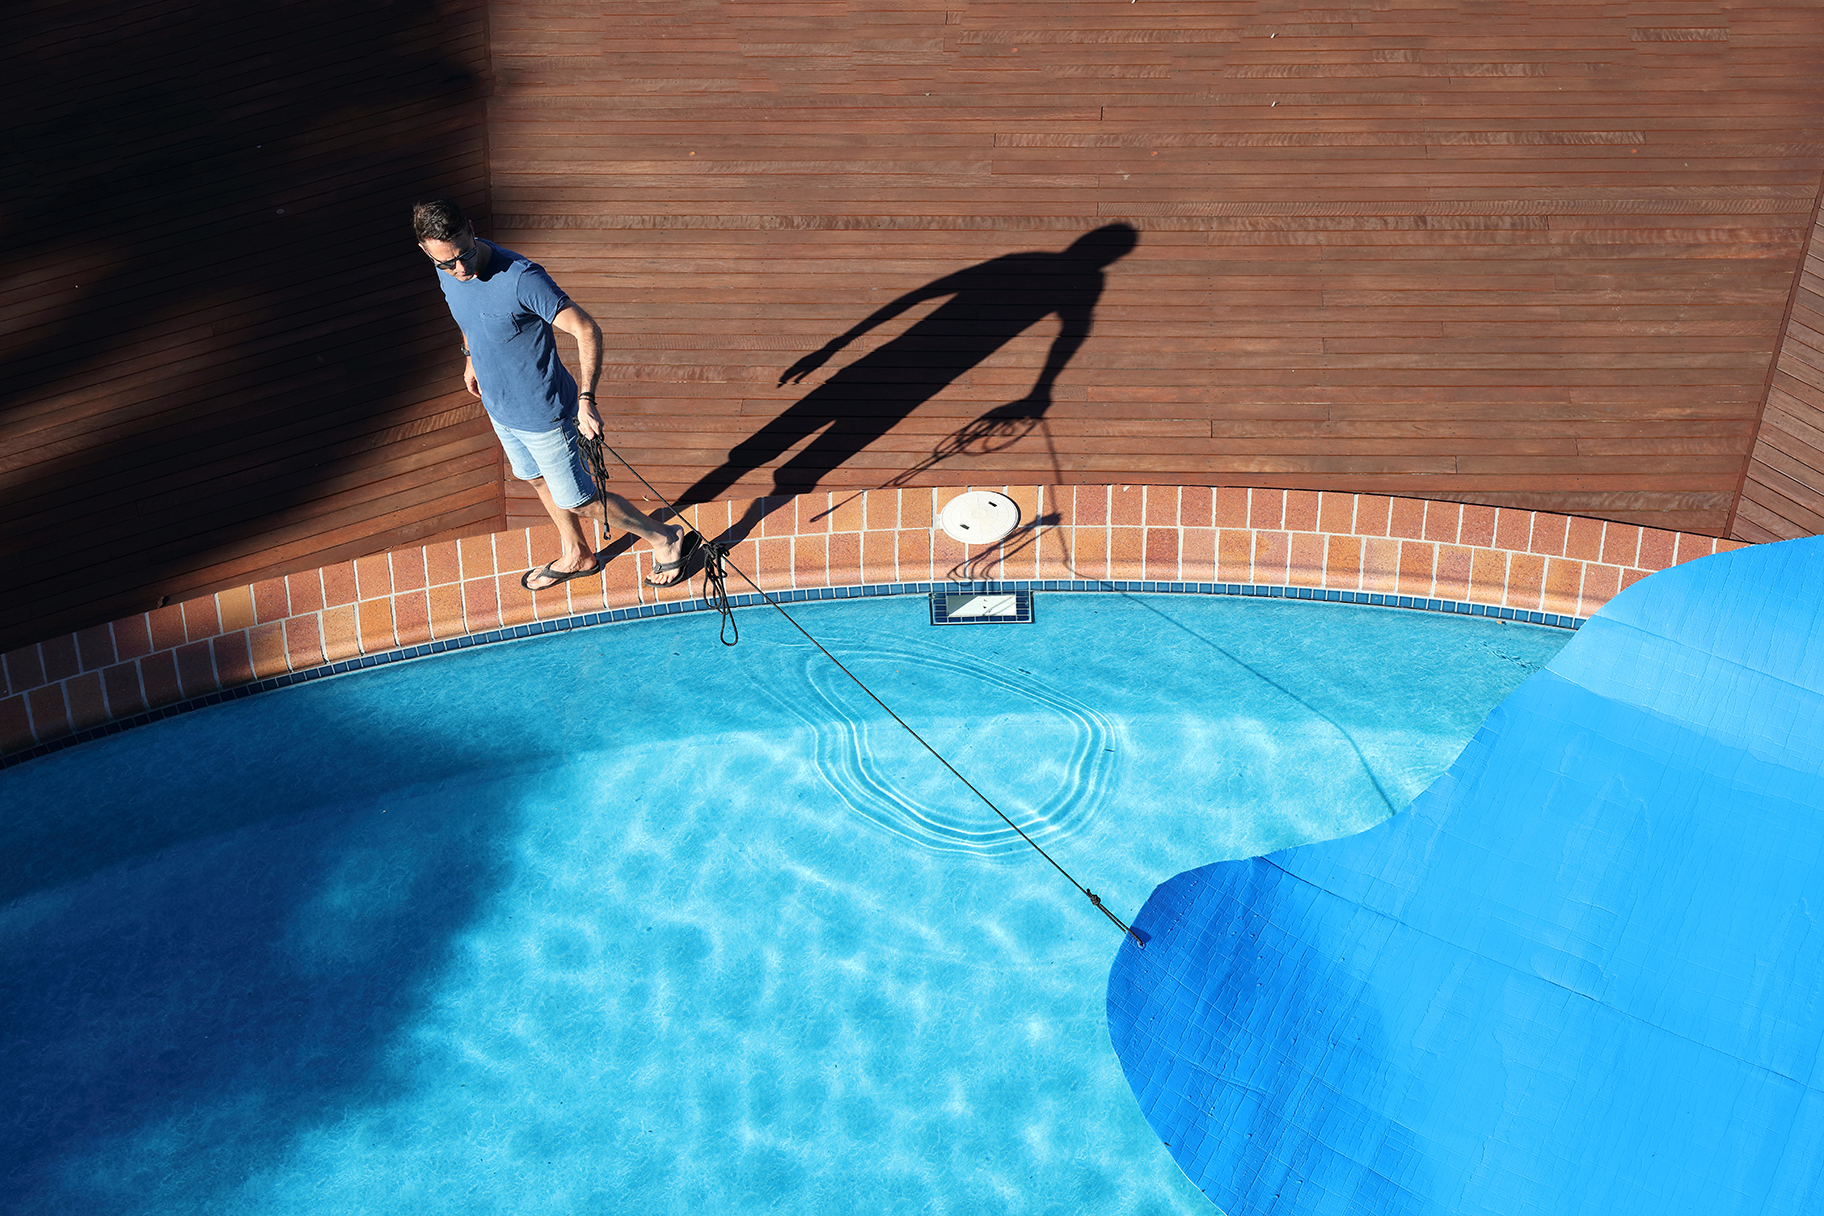 Man covering residential pool with blue tarp